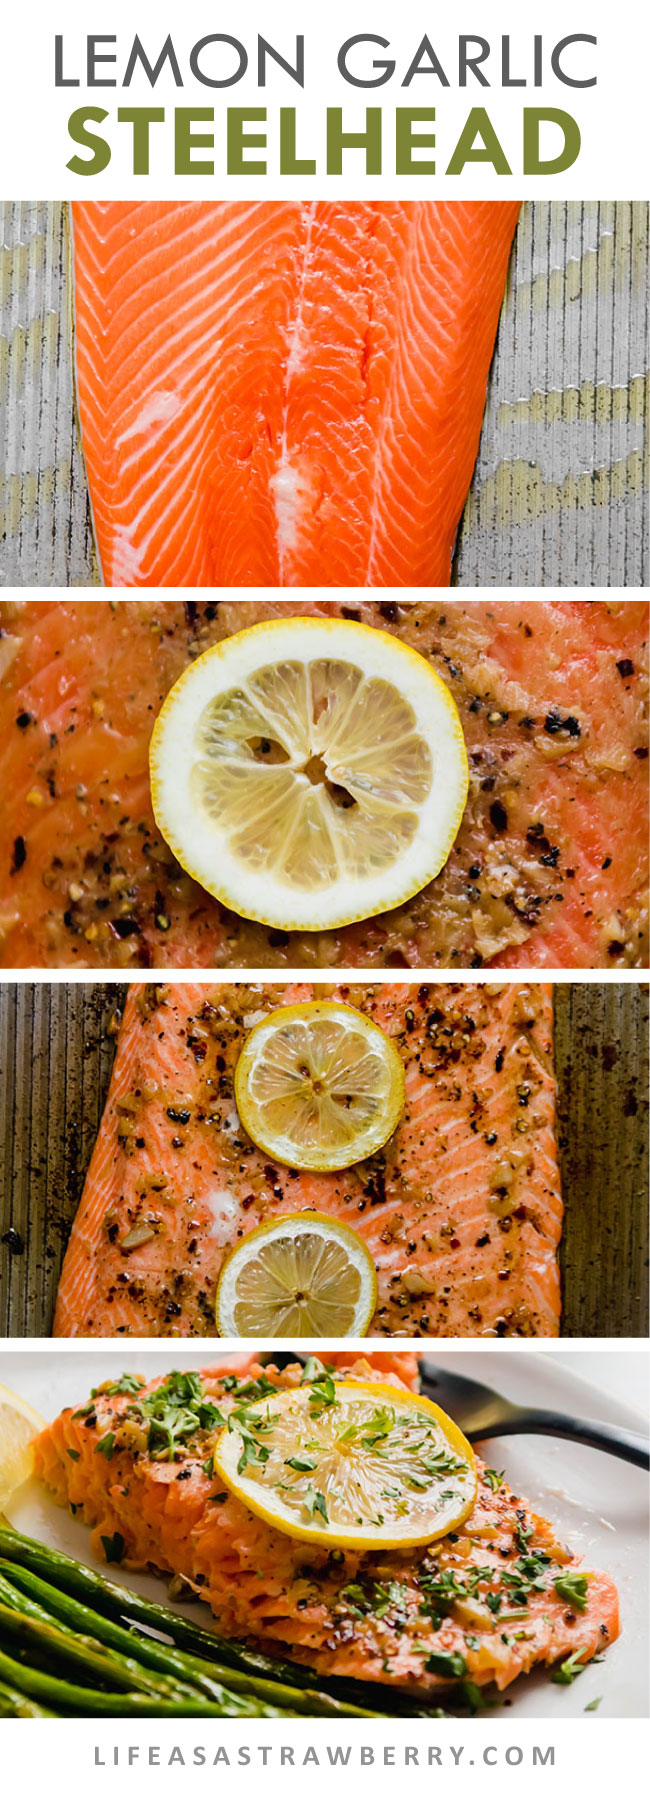 graphic with step-by-step photos showing how to prepare a baked steelhead recipes